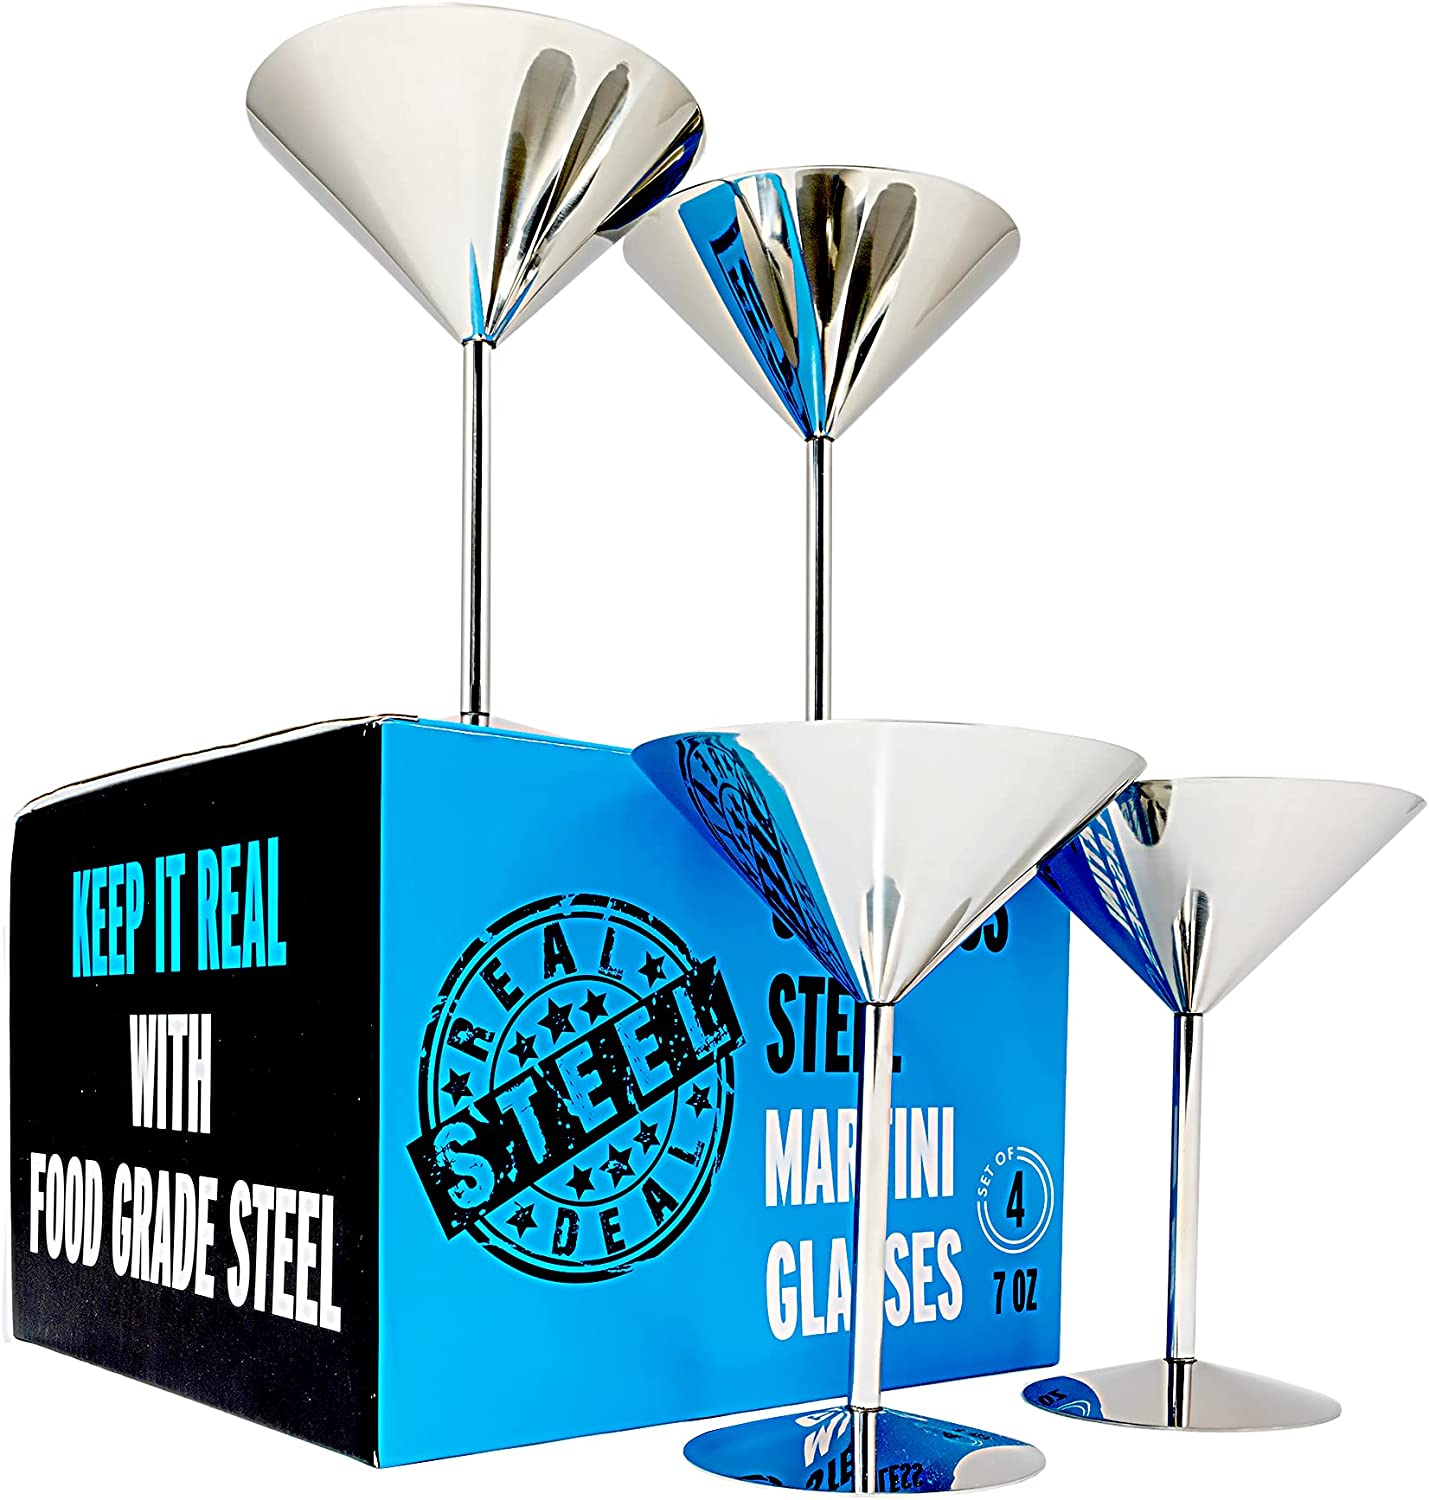 Cheap mail order specialty store Stainless Steel Martini Glasses: Set Shatt Deal Large discharge sale Real of 4